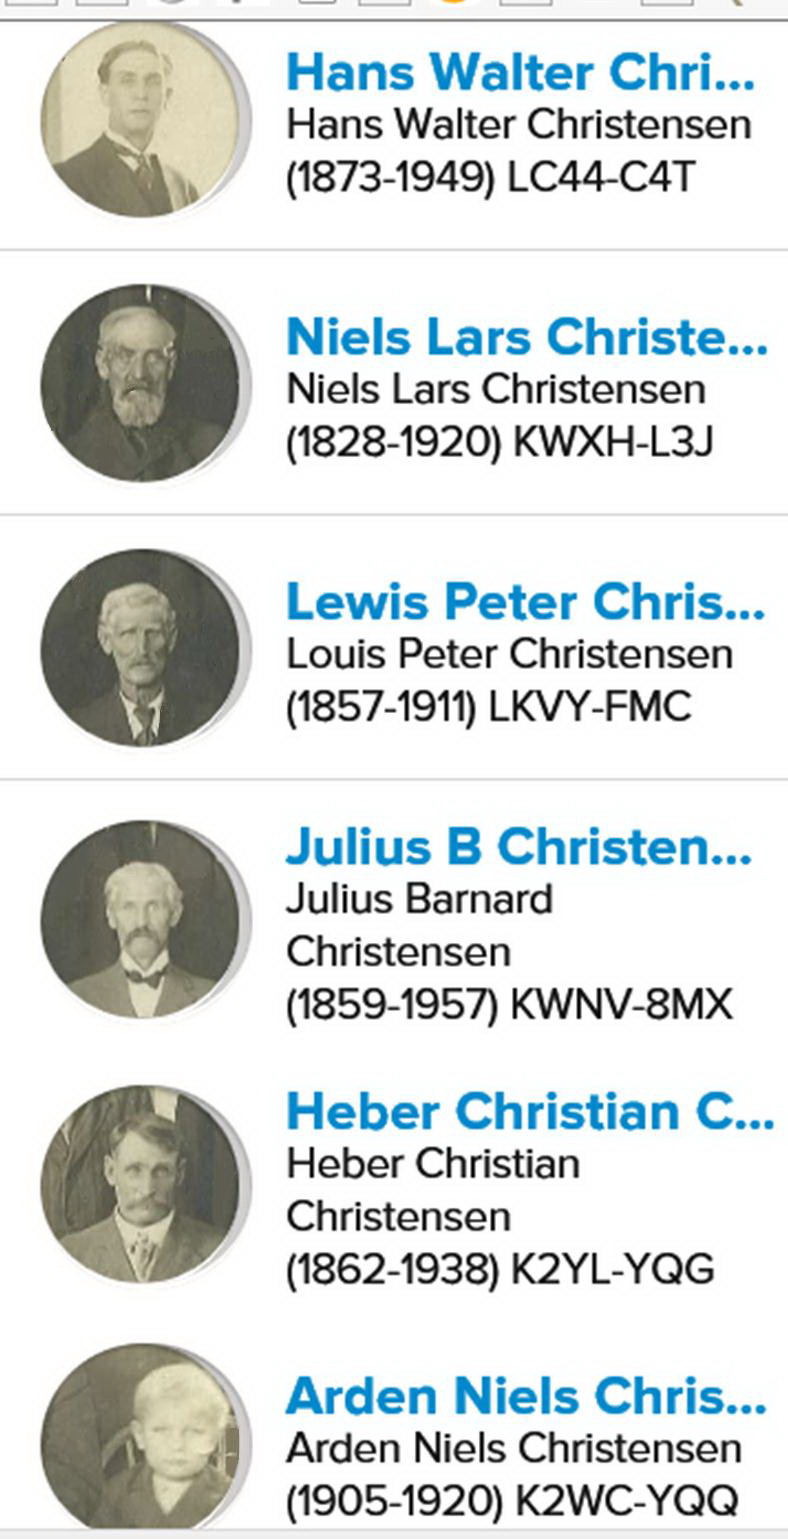 Louis Peter Christensen